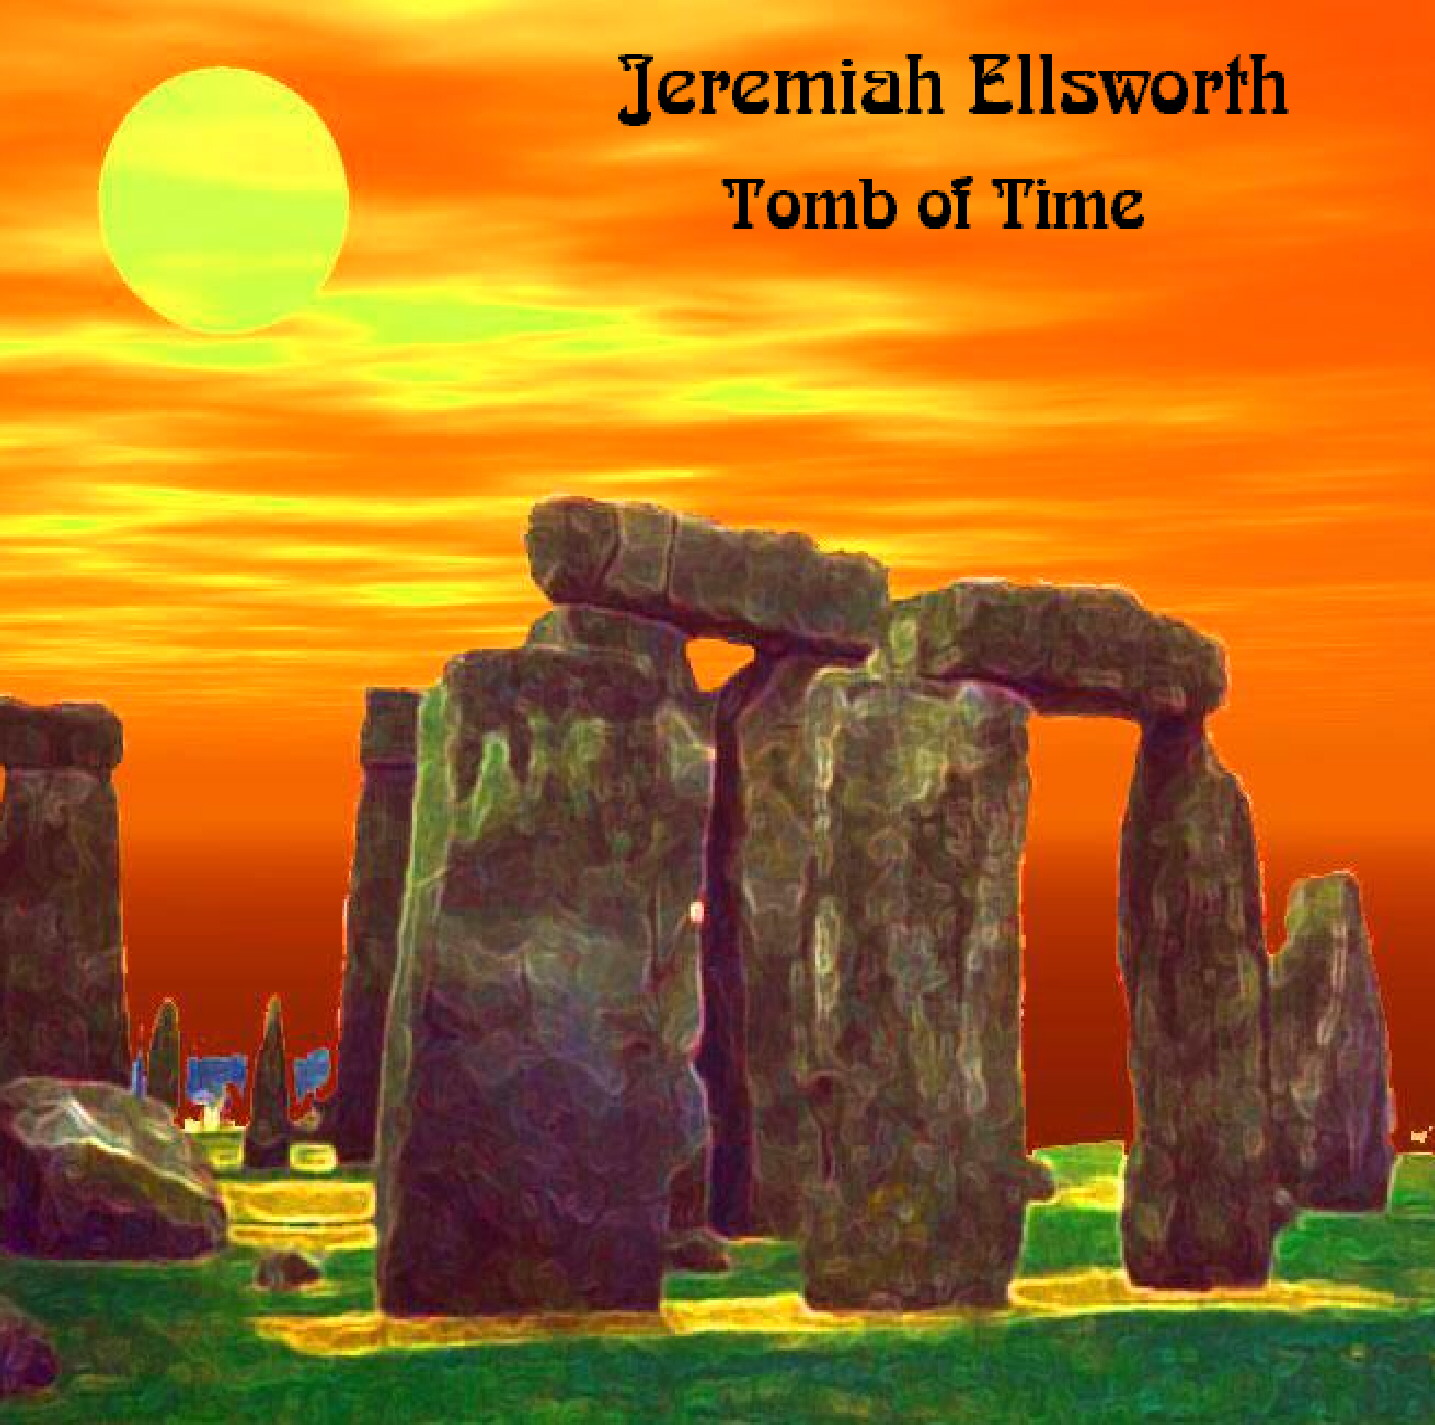 Jeremiah Ellsworth 'Tomb of Time' cover art